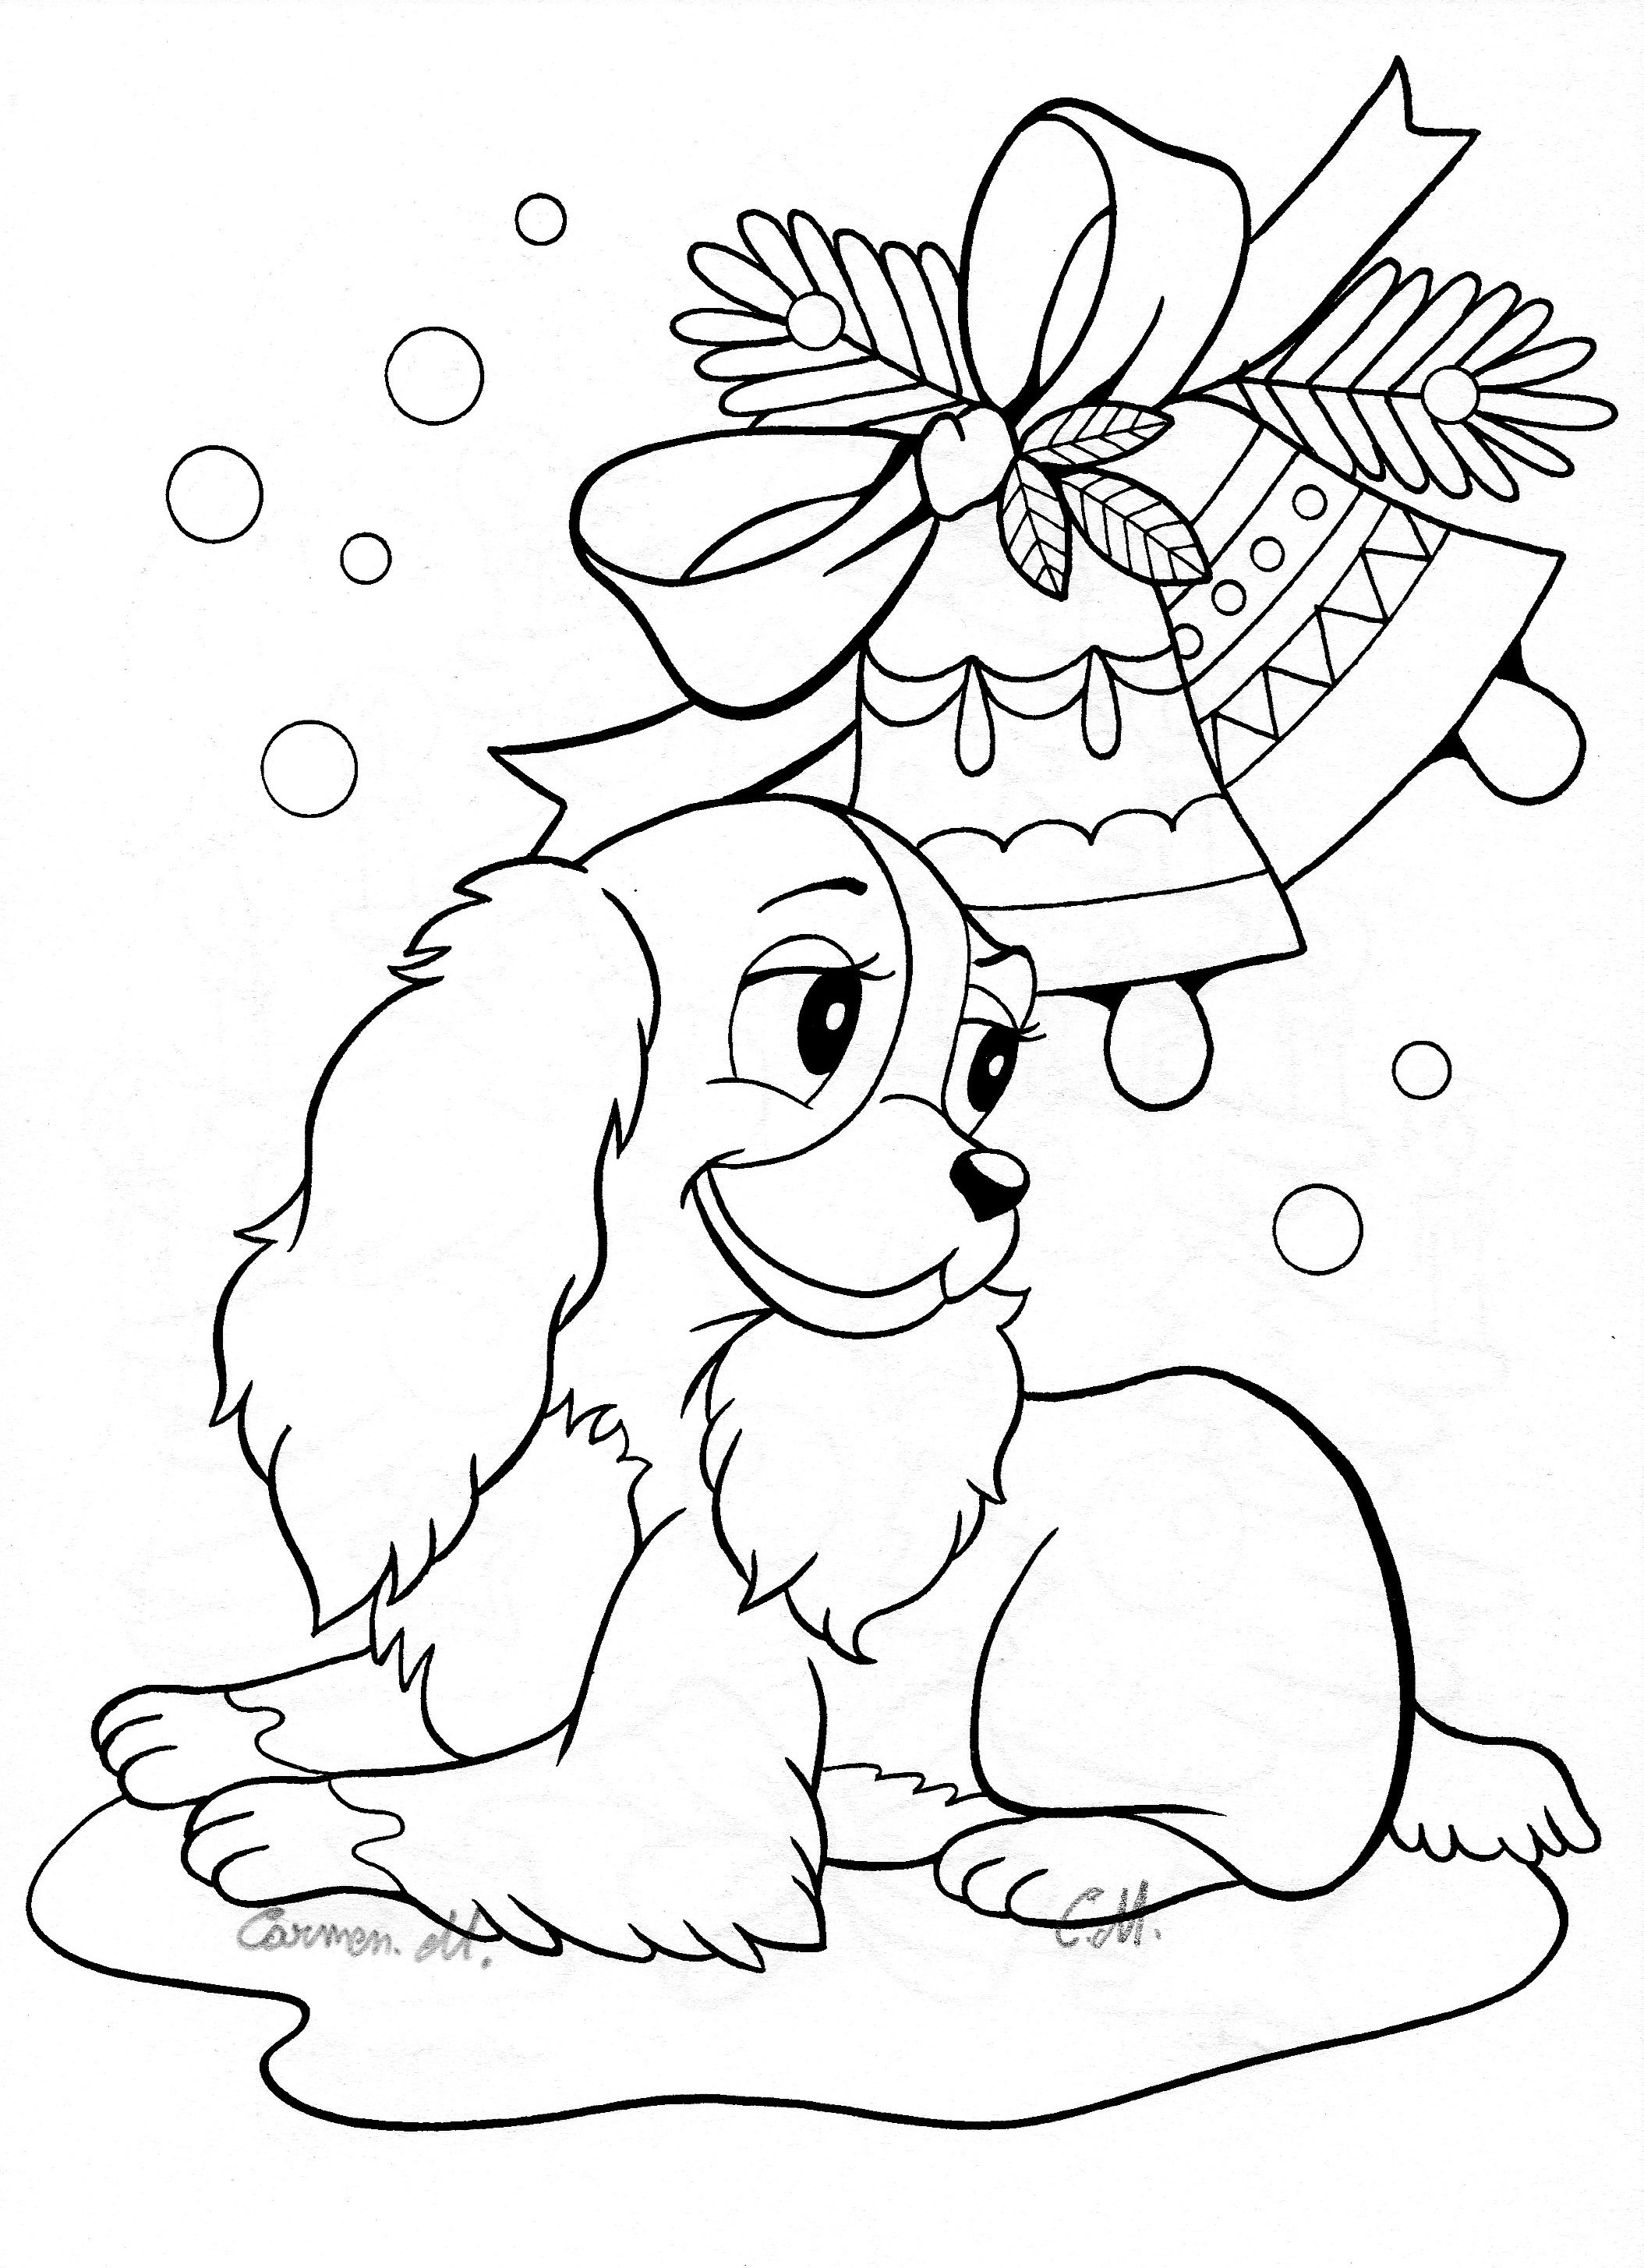 coloring snowman coloring pages christmas snowman coloring pages free and coloring snowman 1 1